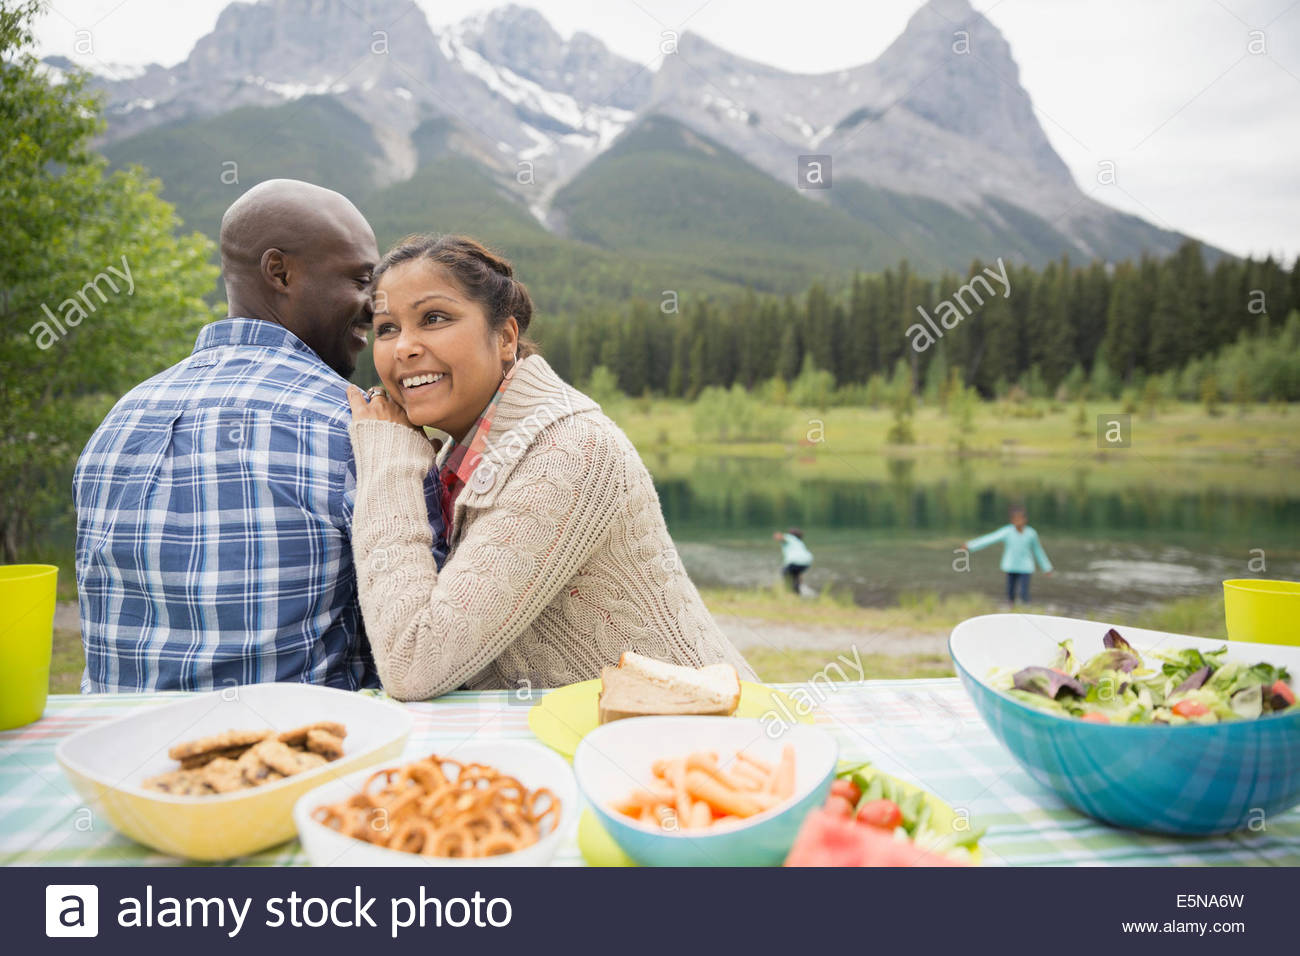 Couple assis à une table de pique-nique près du lac Photo Stock